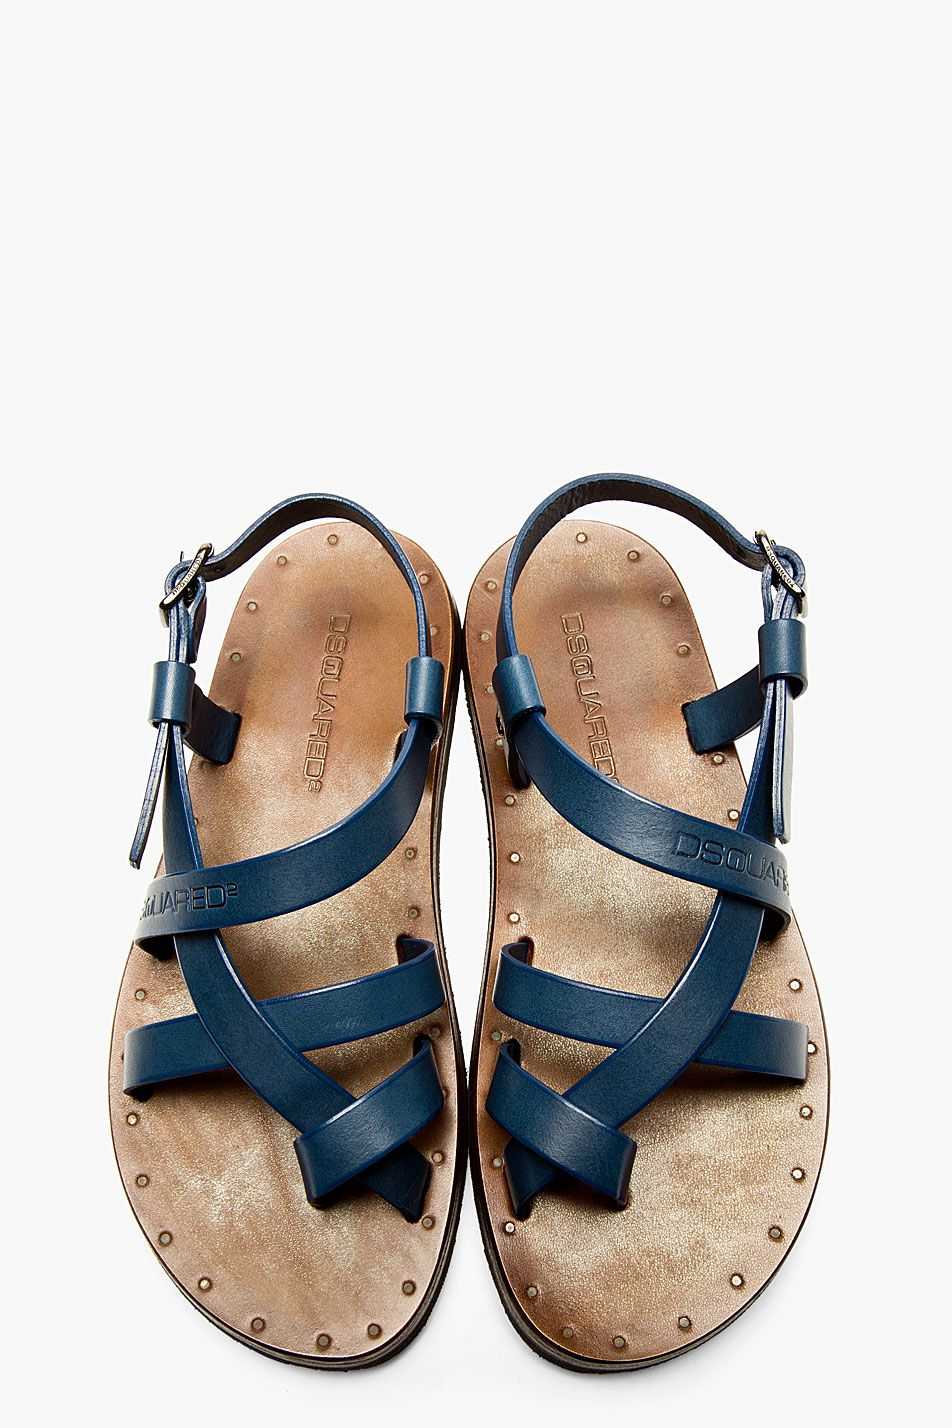 292fa039078 Navy Blue Leather Sandals